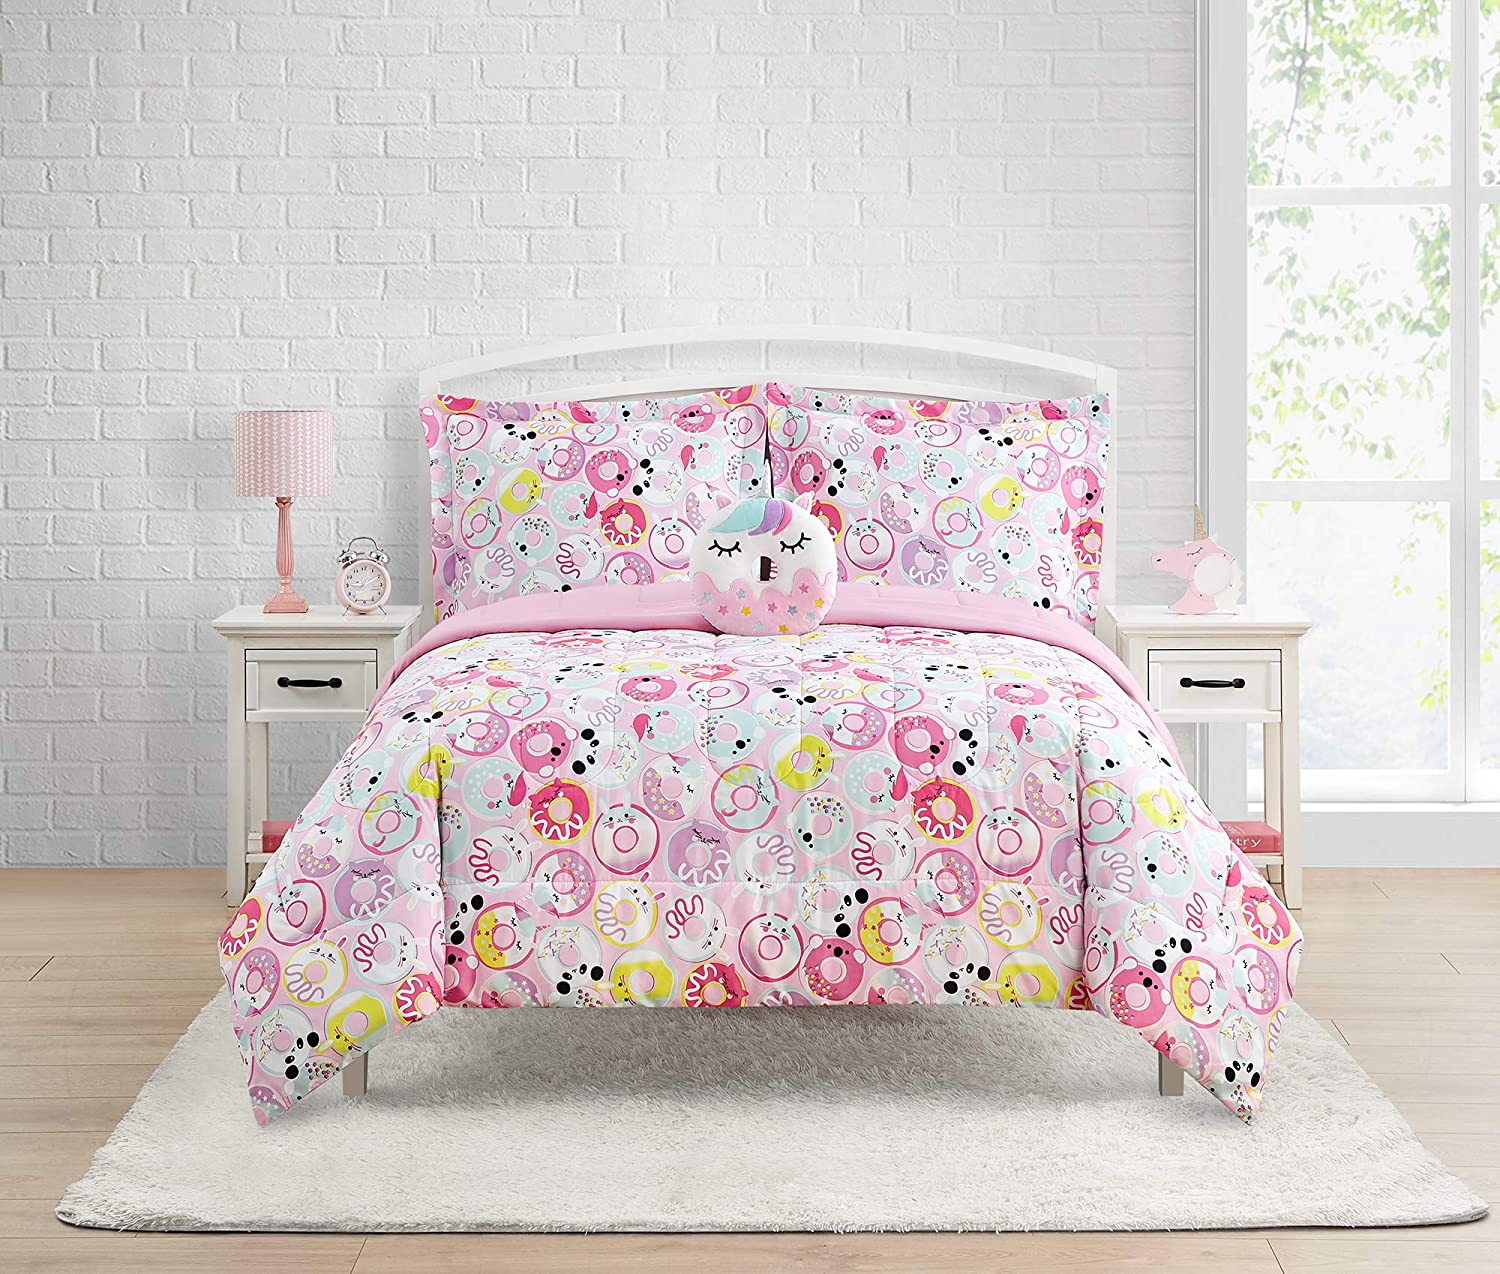 Home Resort Donut 67% OFF of fixed price Critters 4-Piece Comforter Fe Reversible Set Be super welcome